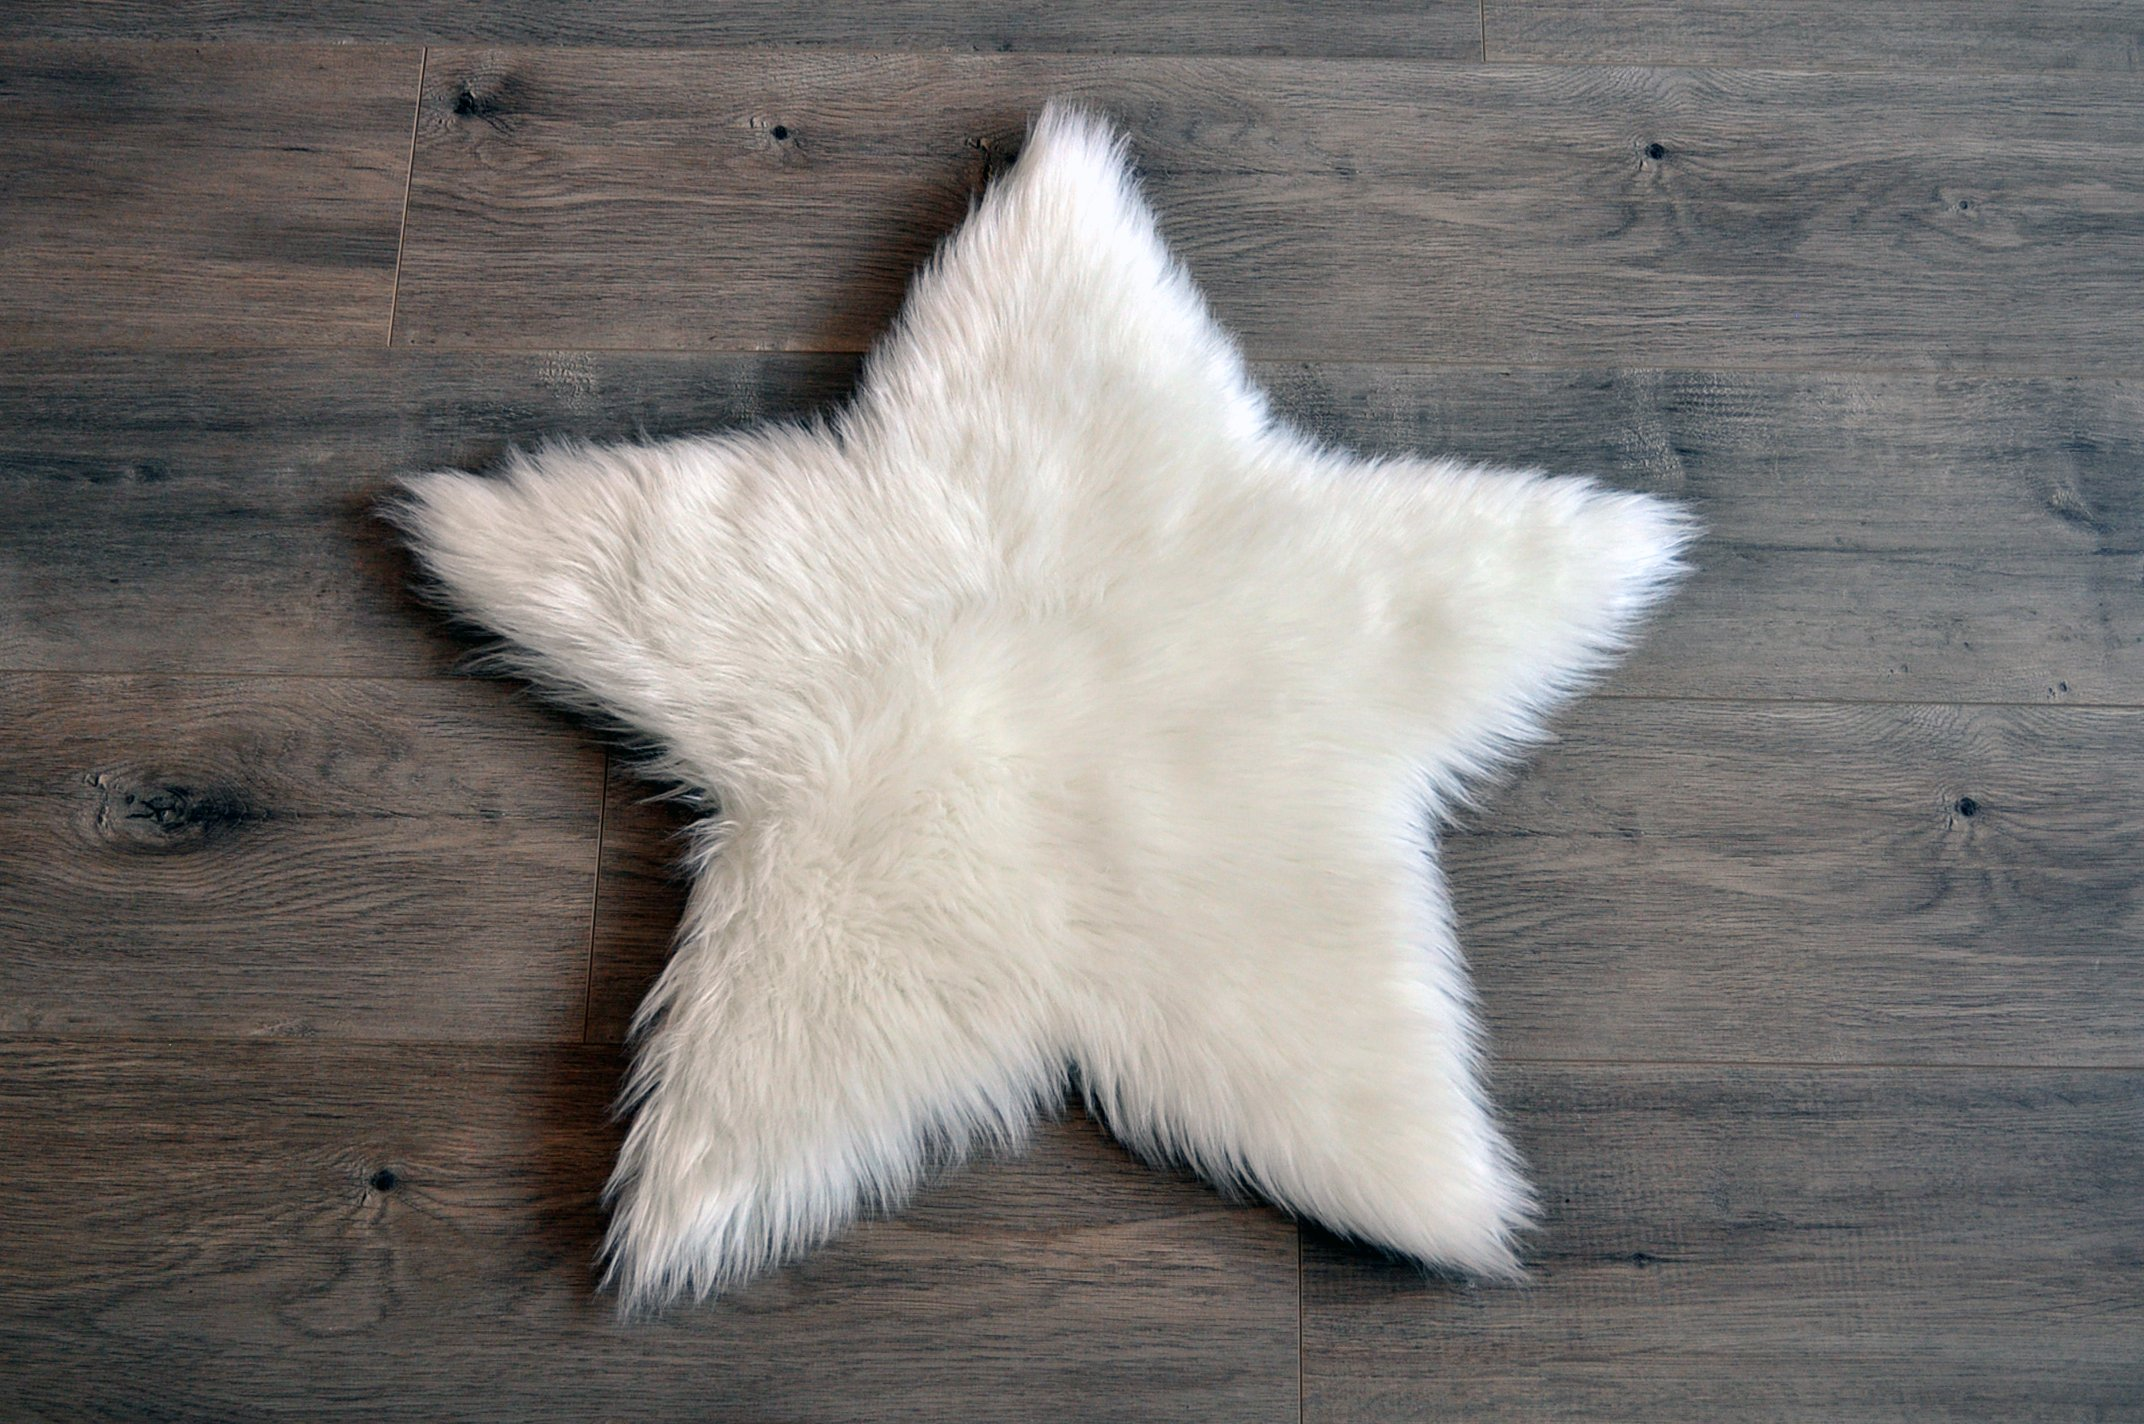 Machine Washable Faux Sheepskin White Star Rug 2' x 2' - Soft and silky - Perfect for baby's room, nursery, playroom (Star Small White)